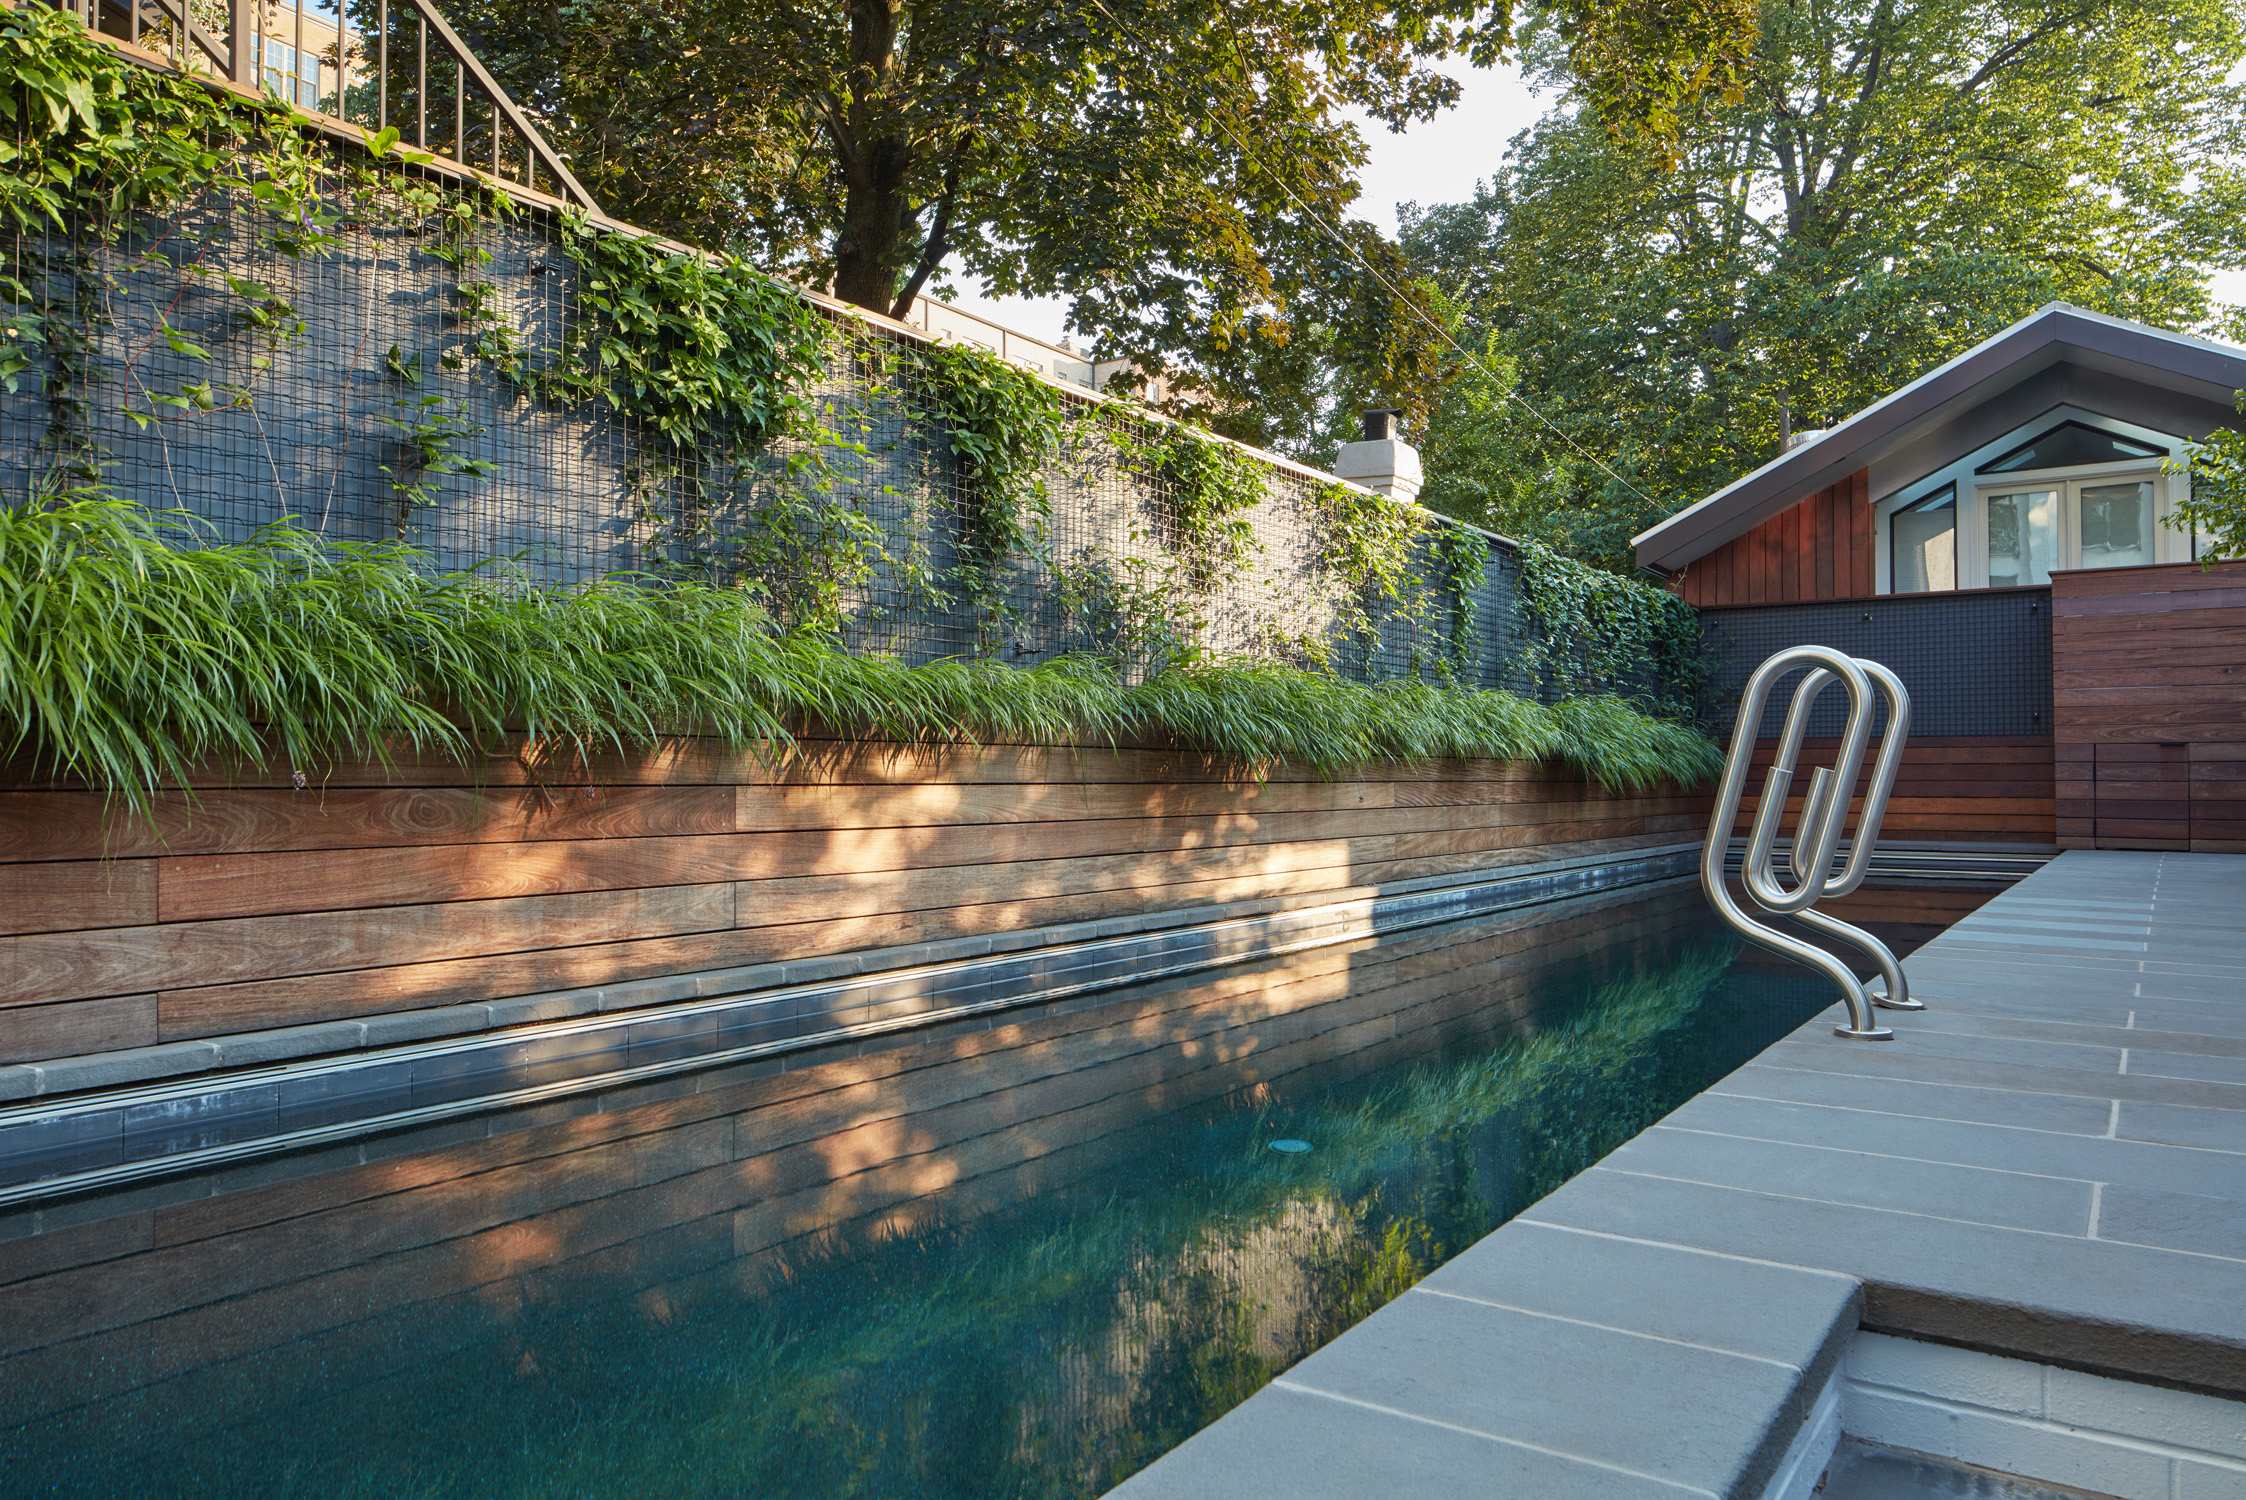 LOCH COLLECTIVE_LANDSCAPE ARCHITECTURE__REFLECTION CUNNINGHAM QUILL_01.jpg